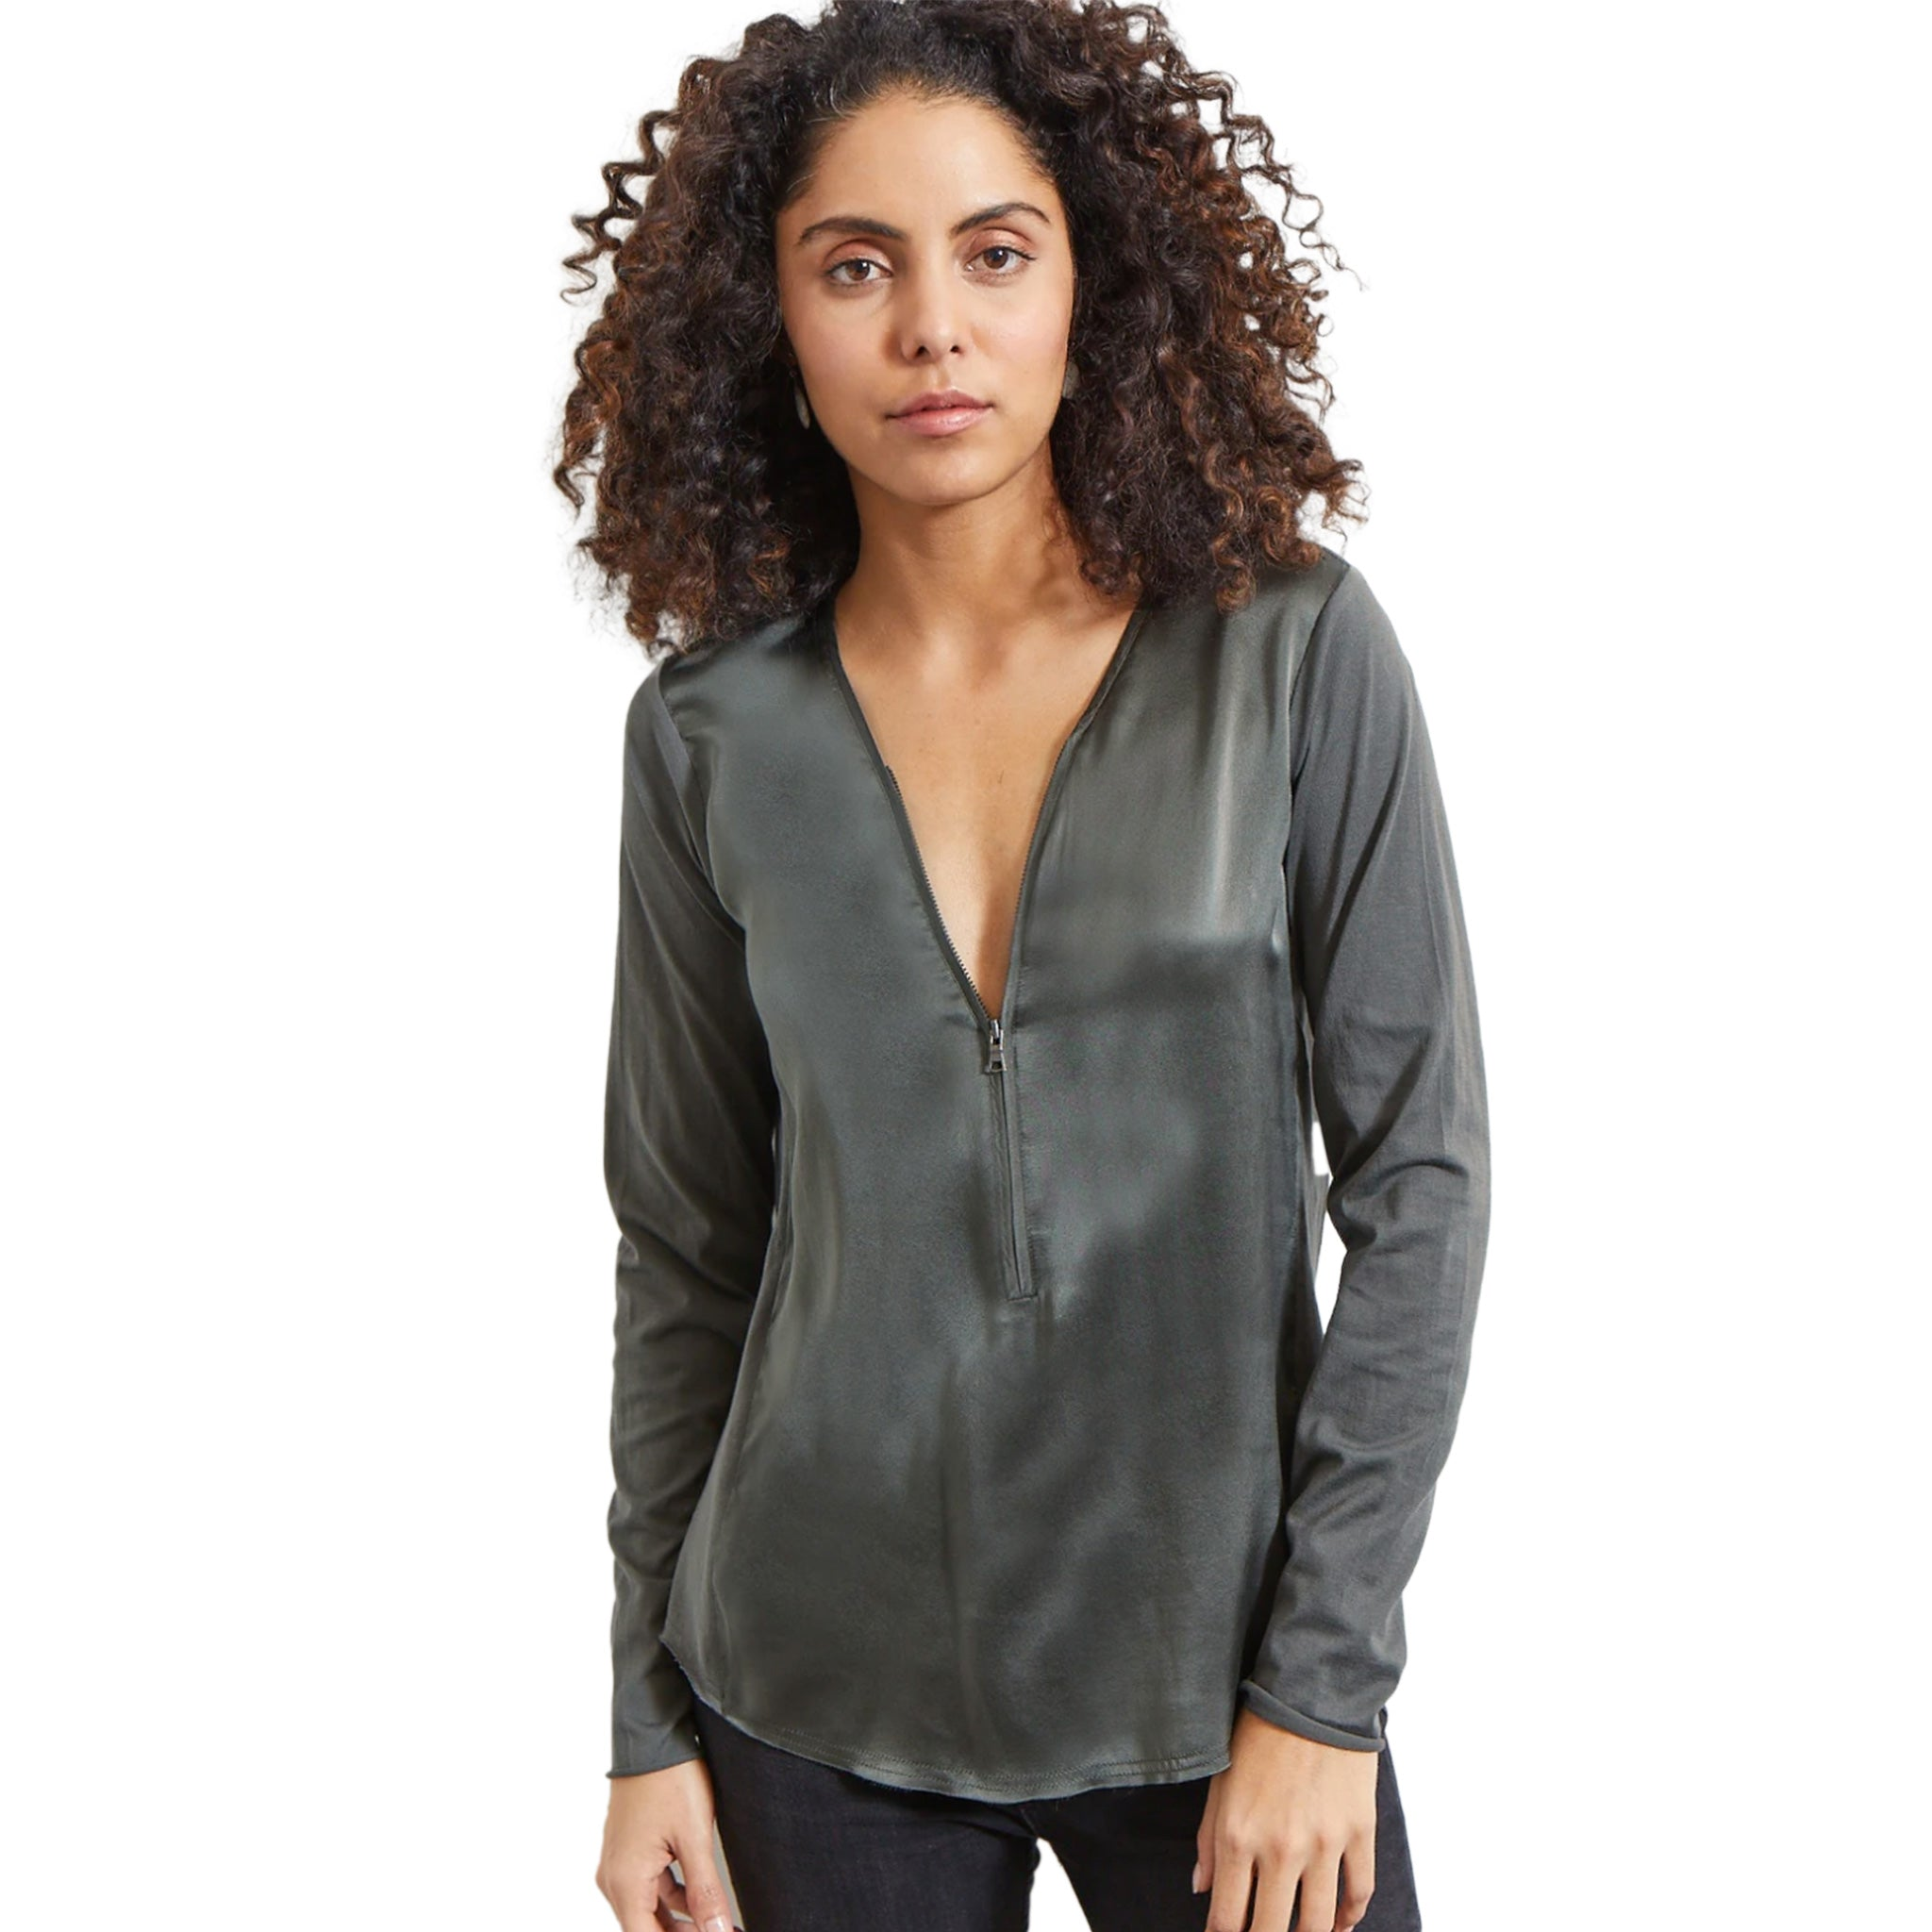 Go Silk - ICONIC Go Zippy Redux - Smoke Colored Silk Top